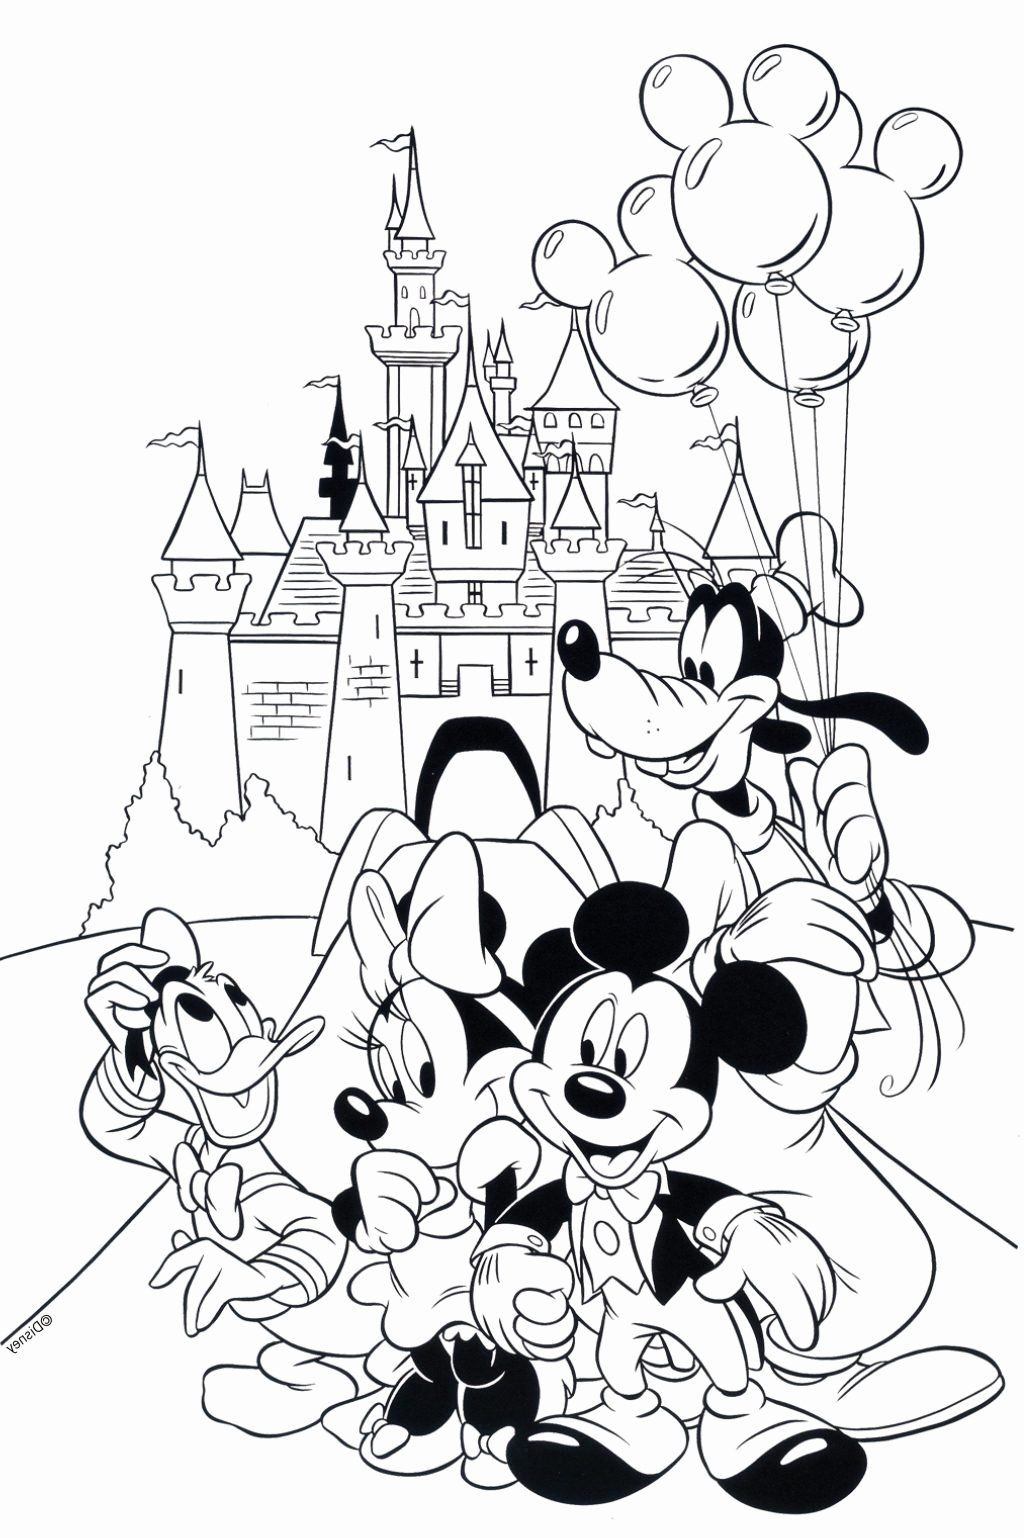 Telling Time Coloring Worksheets Inspirational Worksheet Activities For Teaching Adverb In 2020 Mickey Mouse Coloring Pages Disney Coloring Pages Mickey Coloring Pages